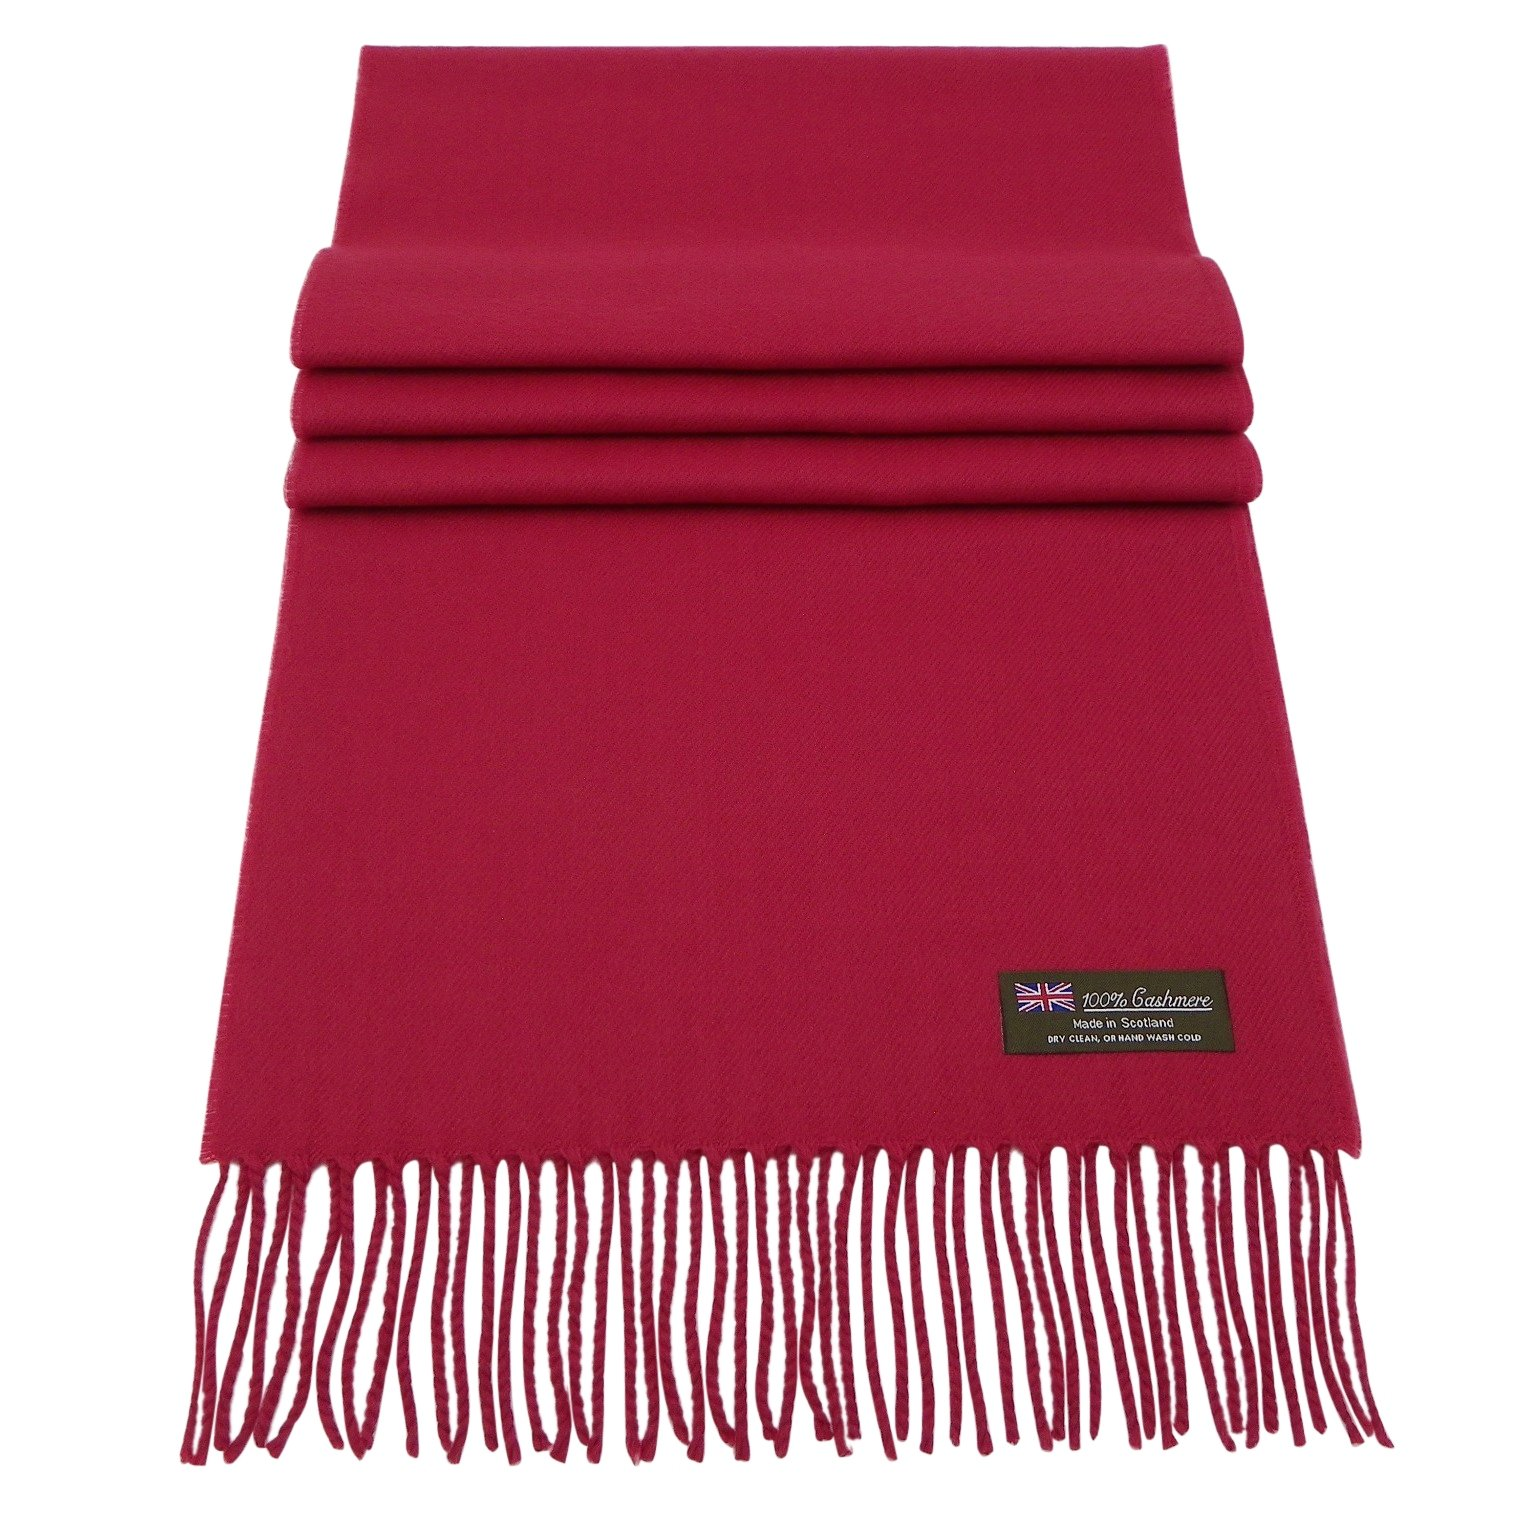 Rosemarie Collections 100% Cashmere Winter Scarf Made In Scotland (Berry Red) by Rosemarie Collections